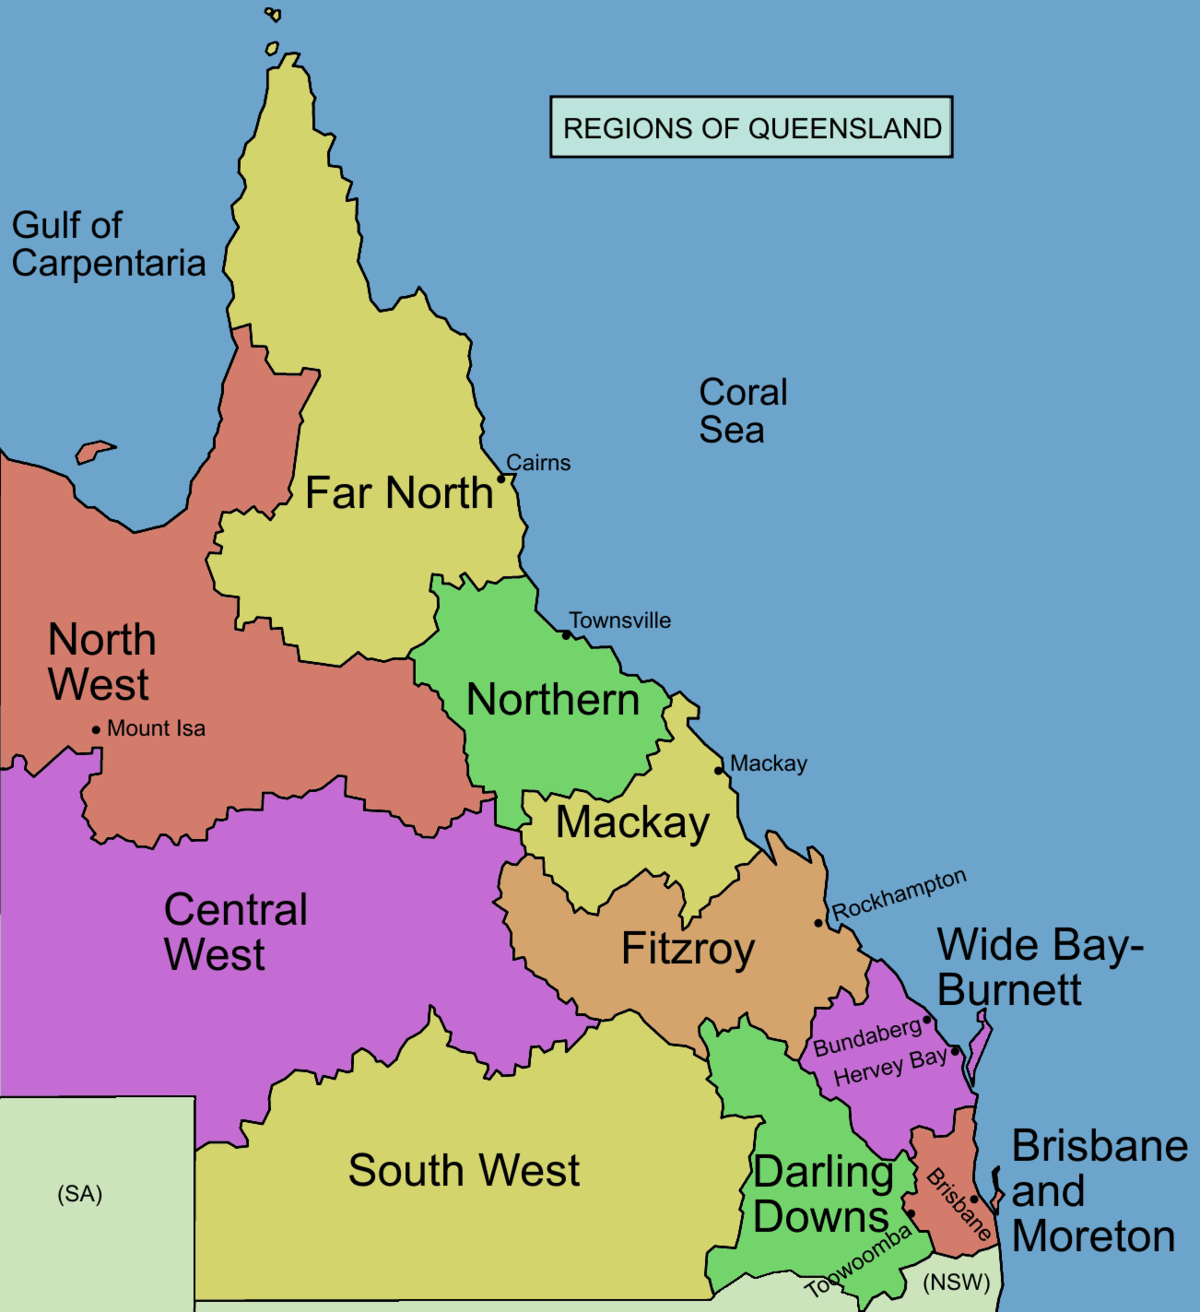 darling downs wikipediaState University Location Map Free Download Wiring Diagram Schematic #14